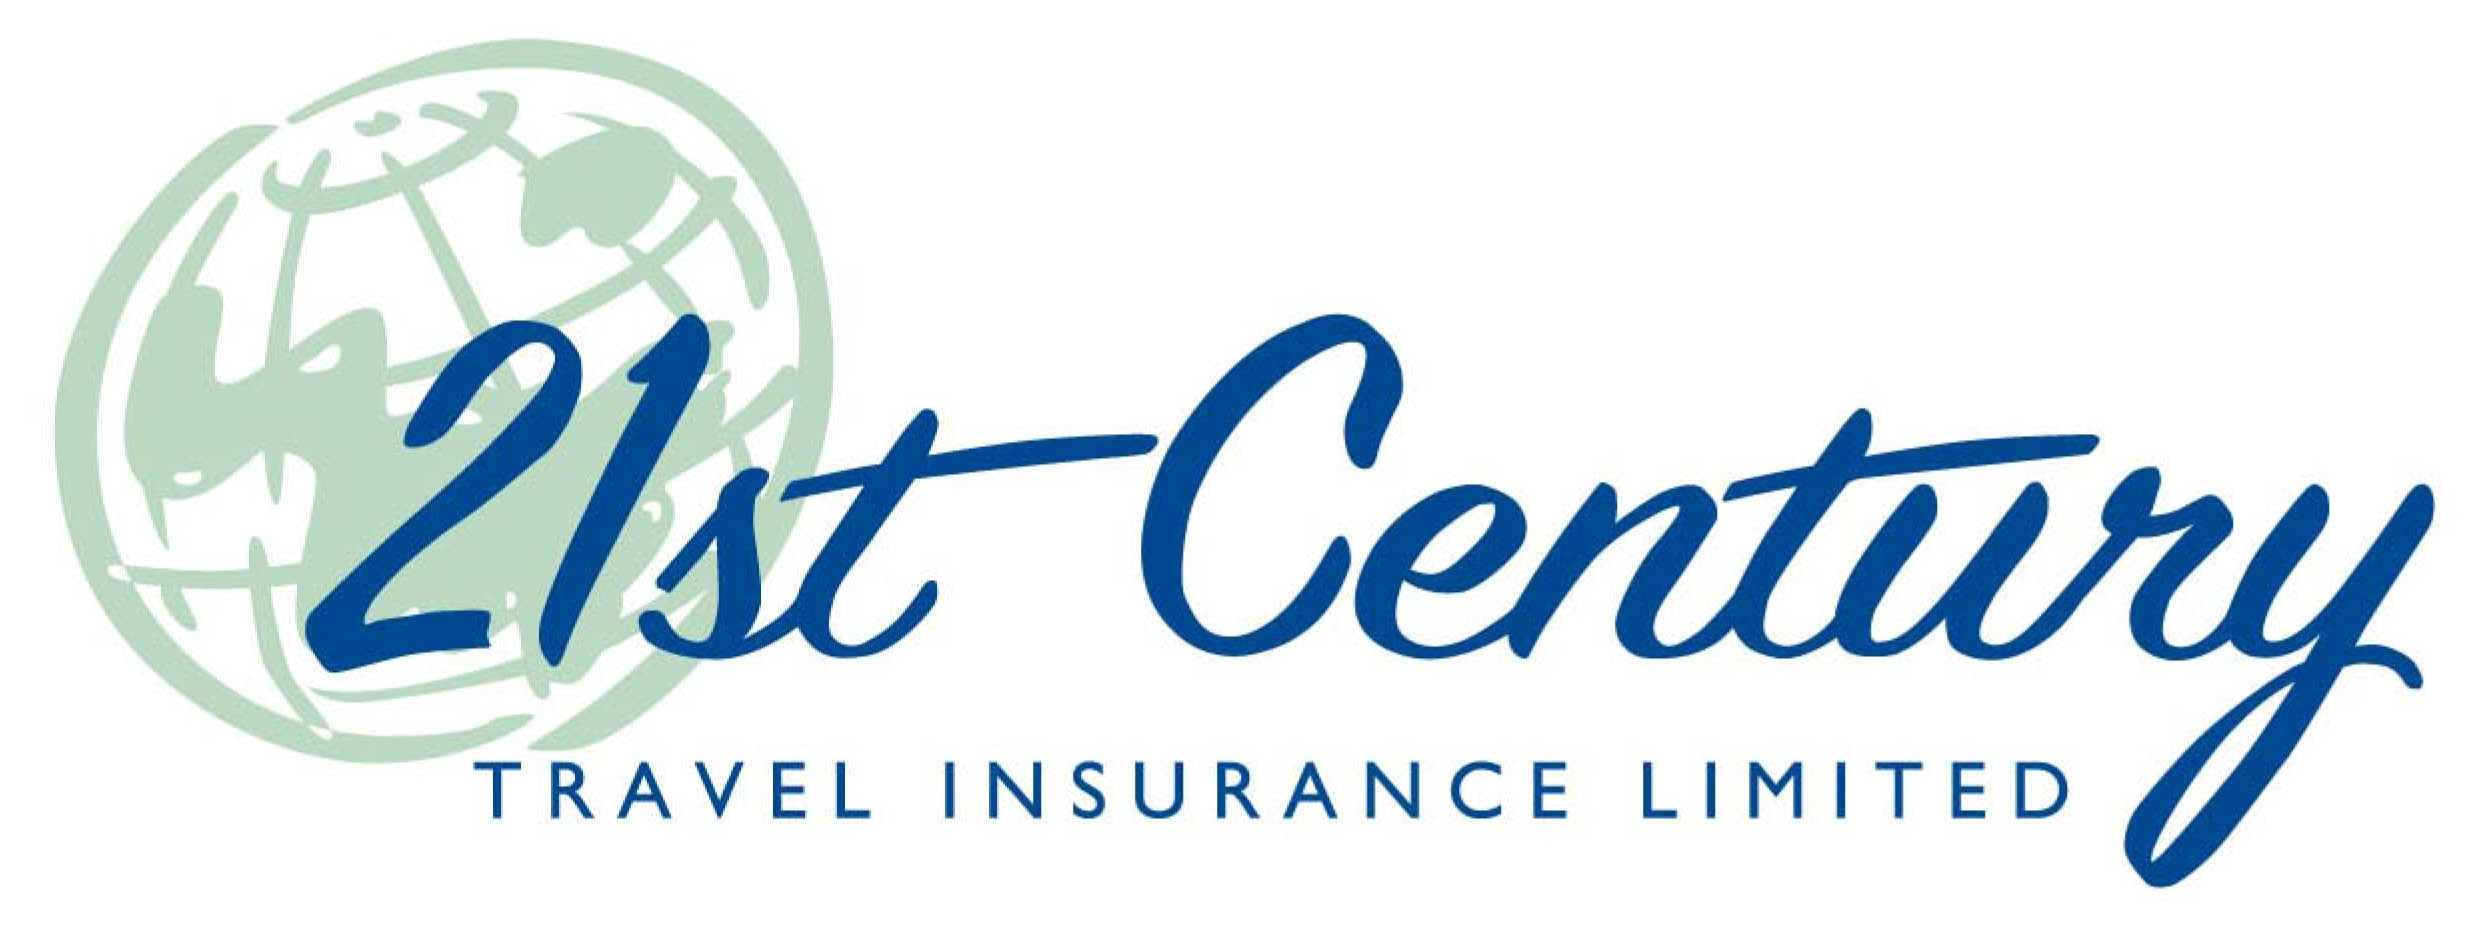 21st Century Travel Insurance Ltd. logo